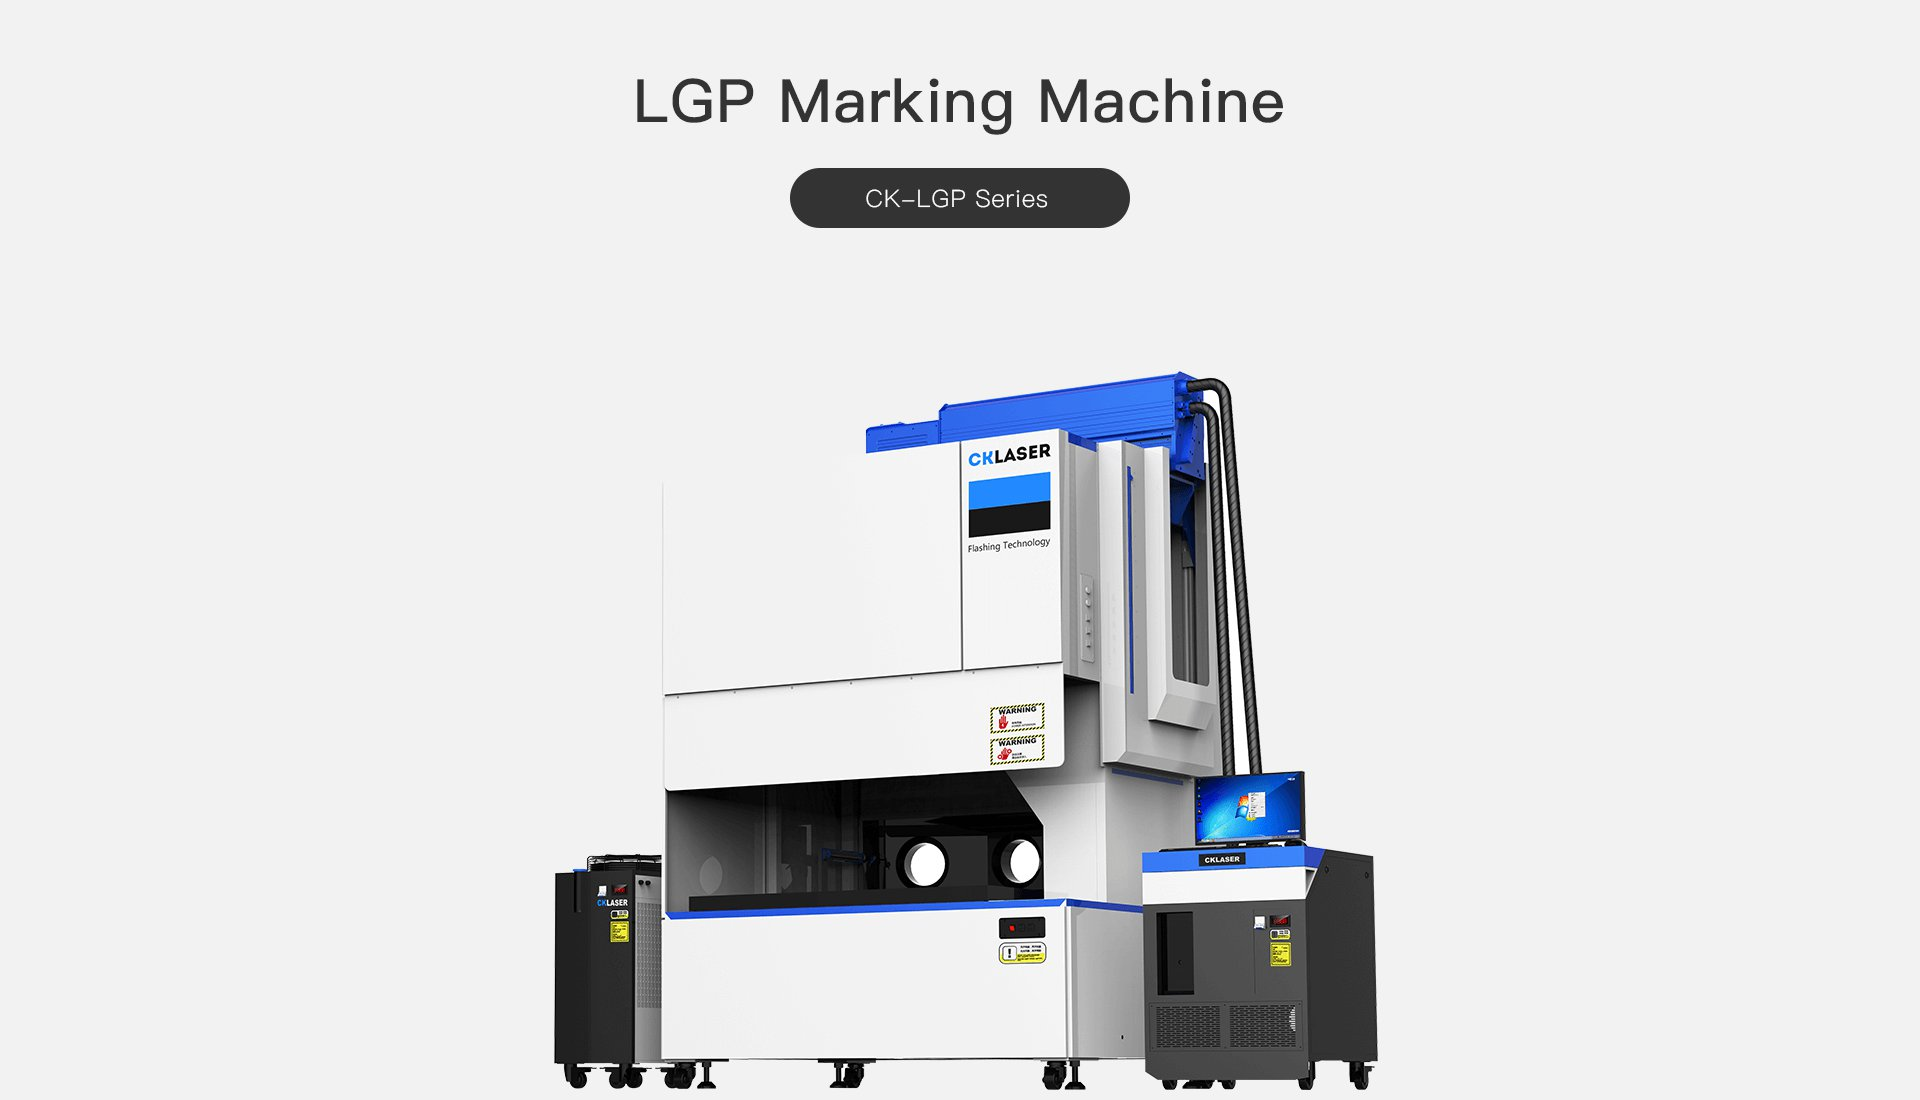 Taste Laser-laser engraving machine